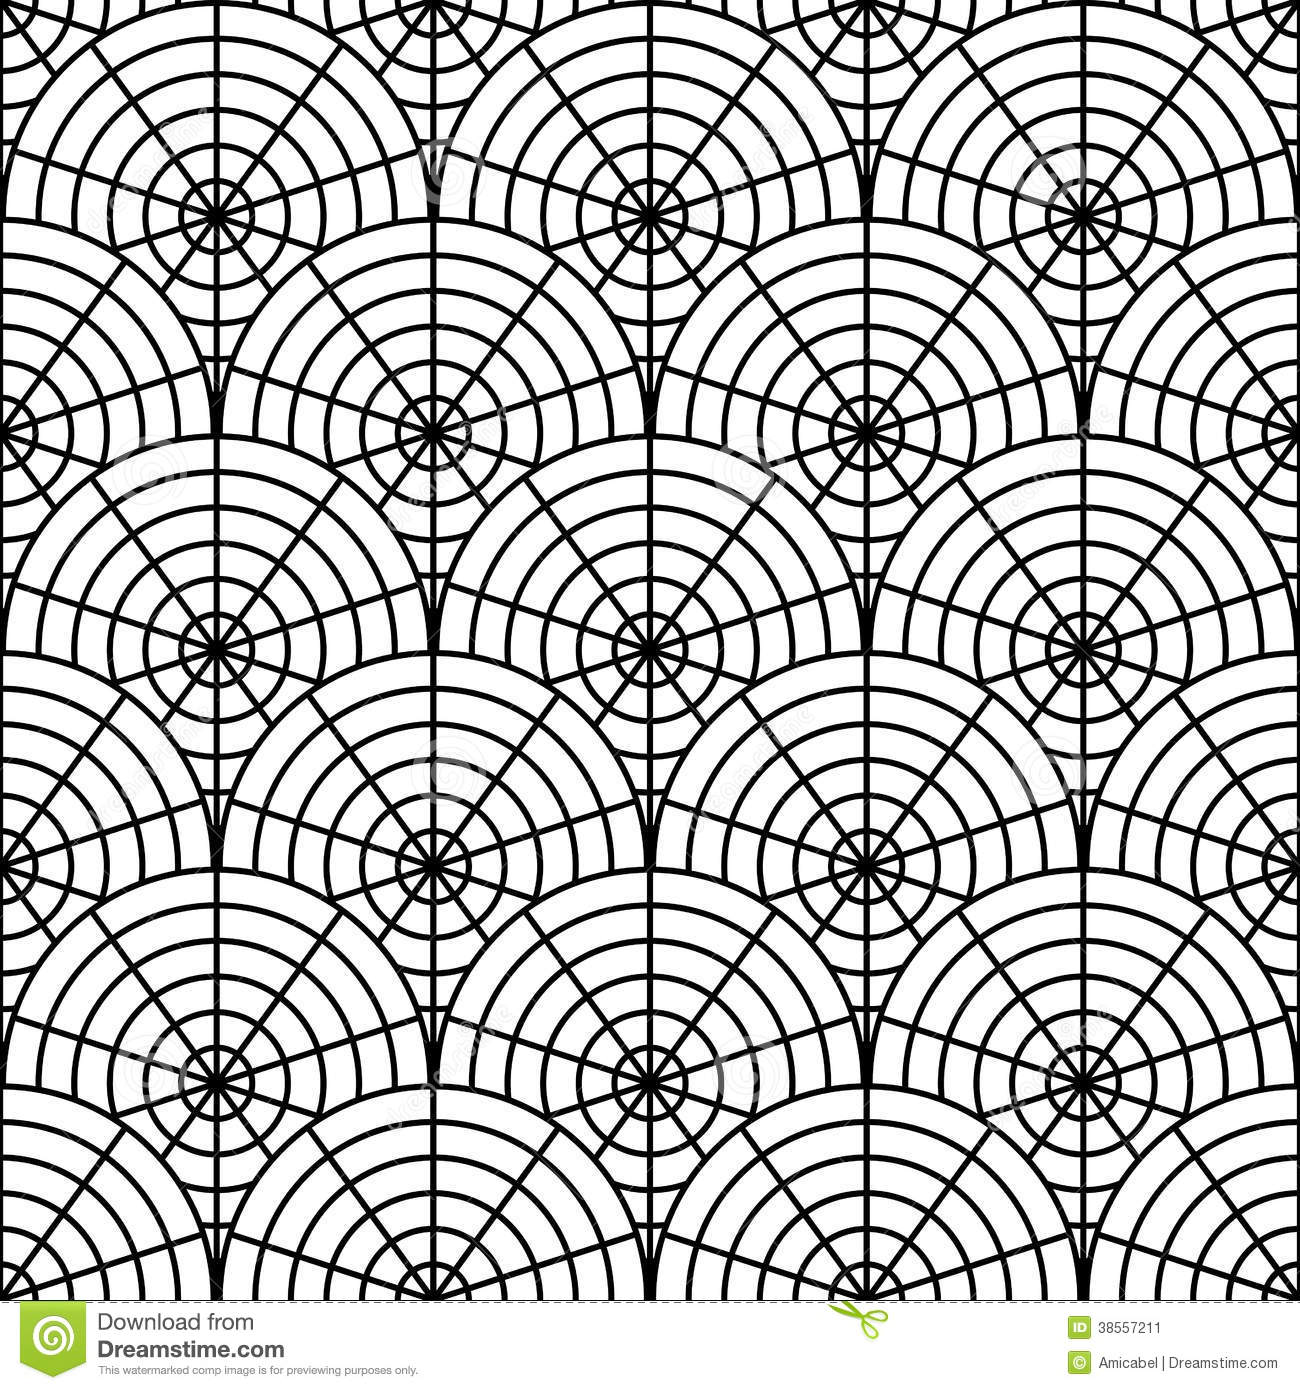 halloween spider web coloring pages free here